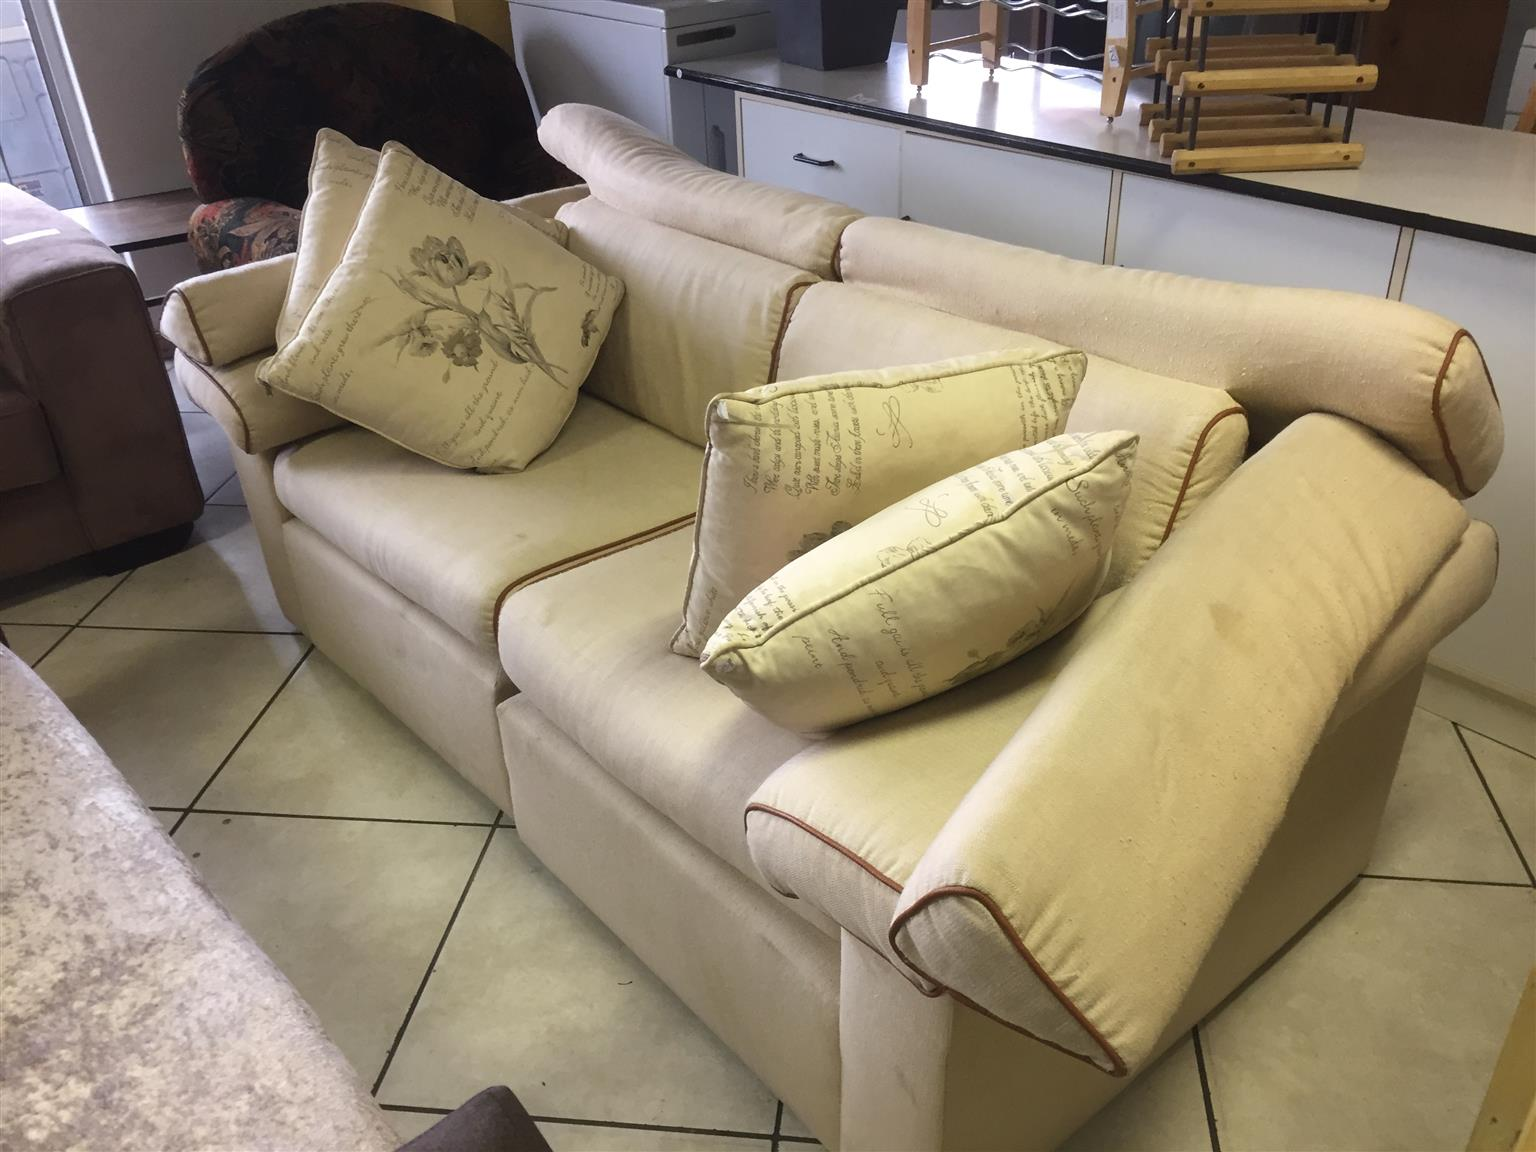 2 Seater Sofa With Cushions Junk Mail